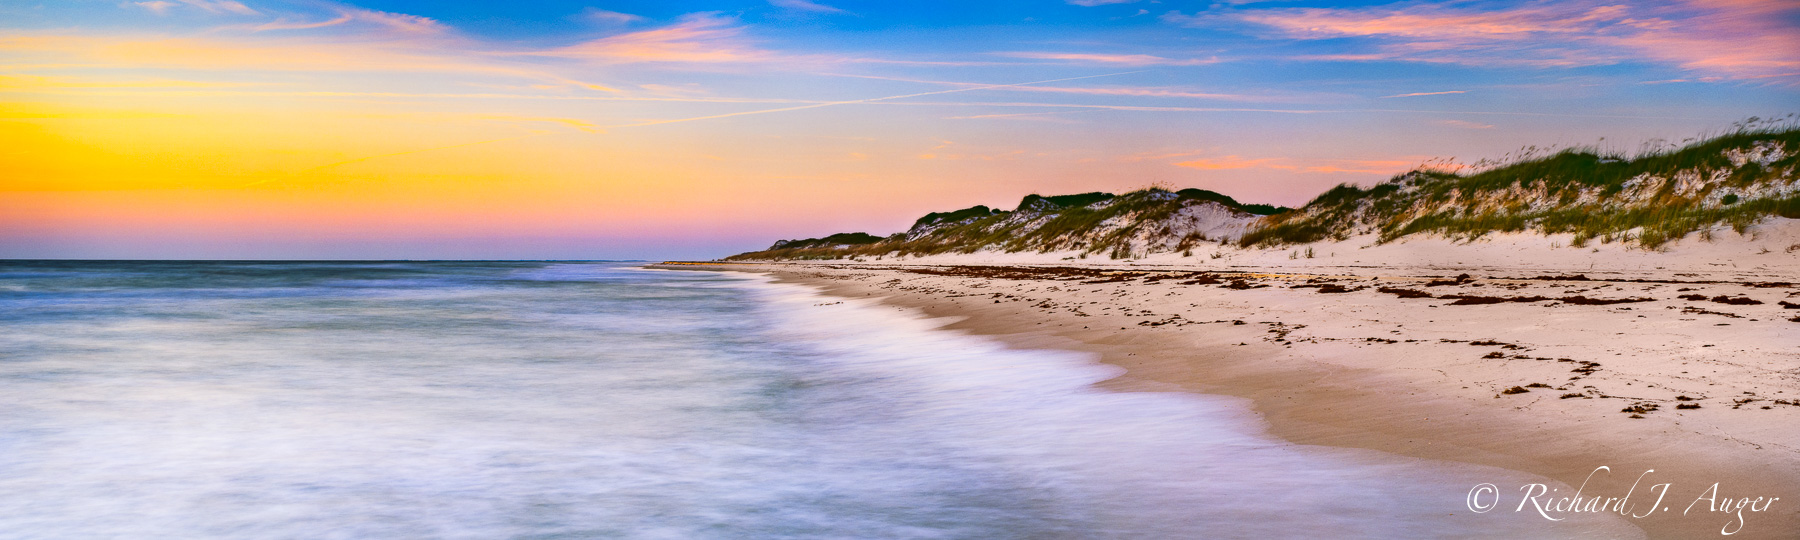 Cape San Blas, Florida, Beach, Sunset, Sunrise, Panorama, Panoramic, Photograph